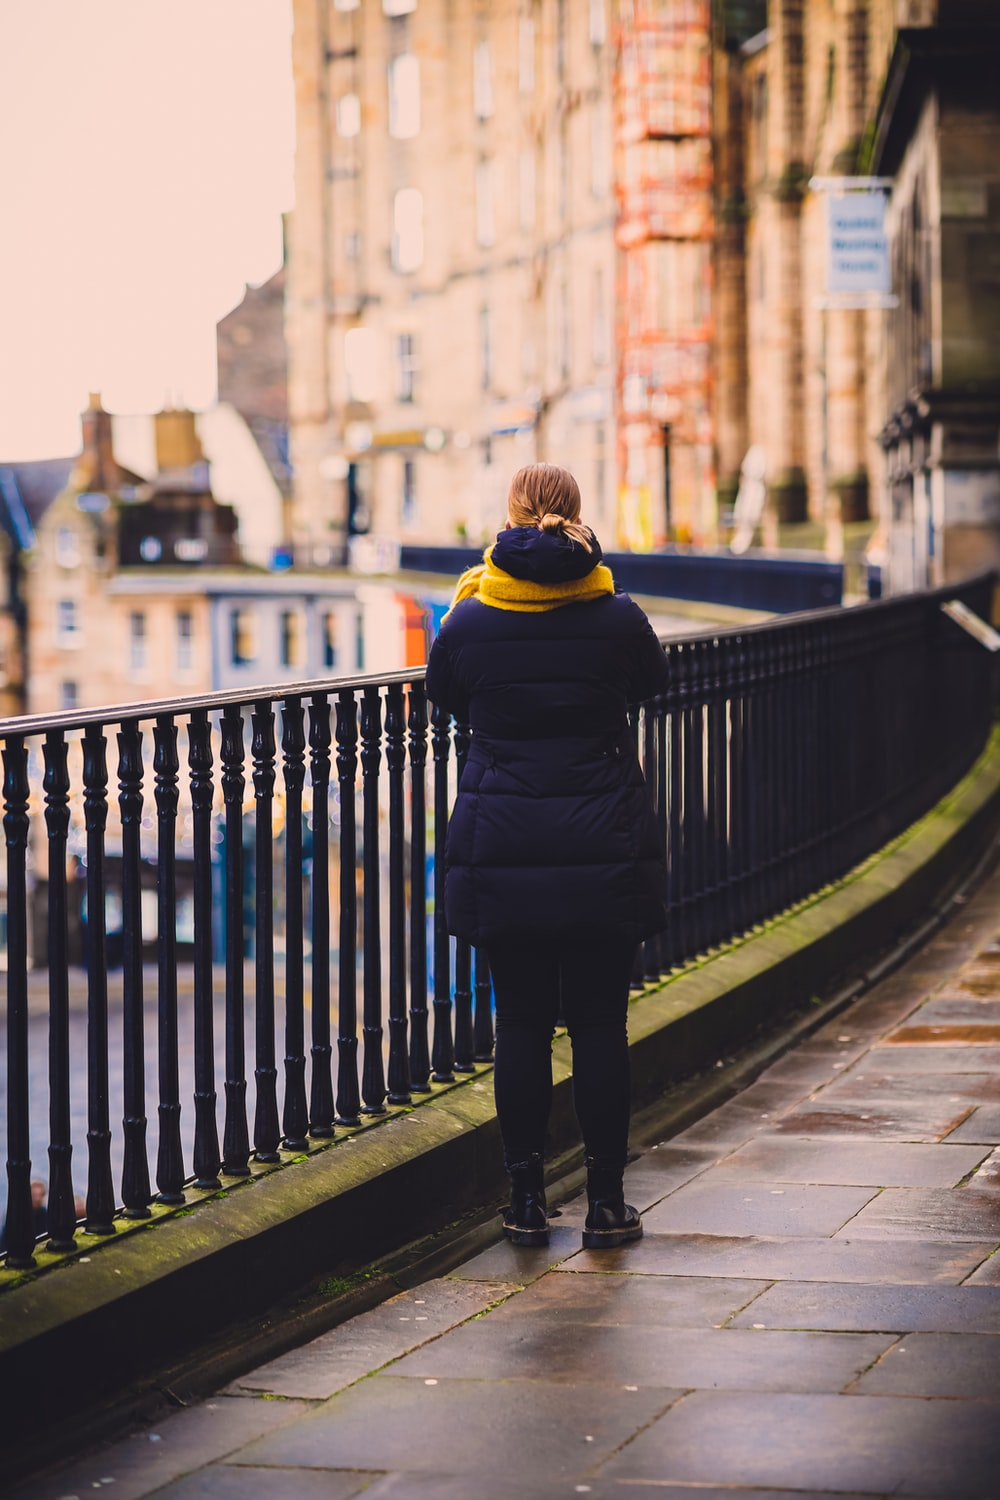 woman in black and yellow jacket standing on sidewalk during daytime